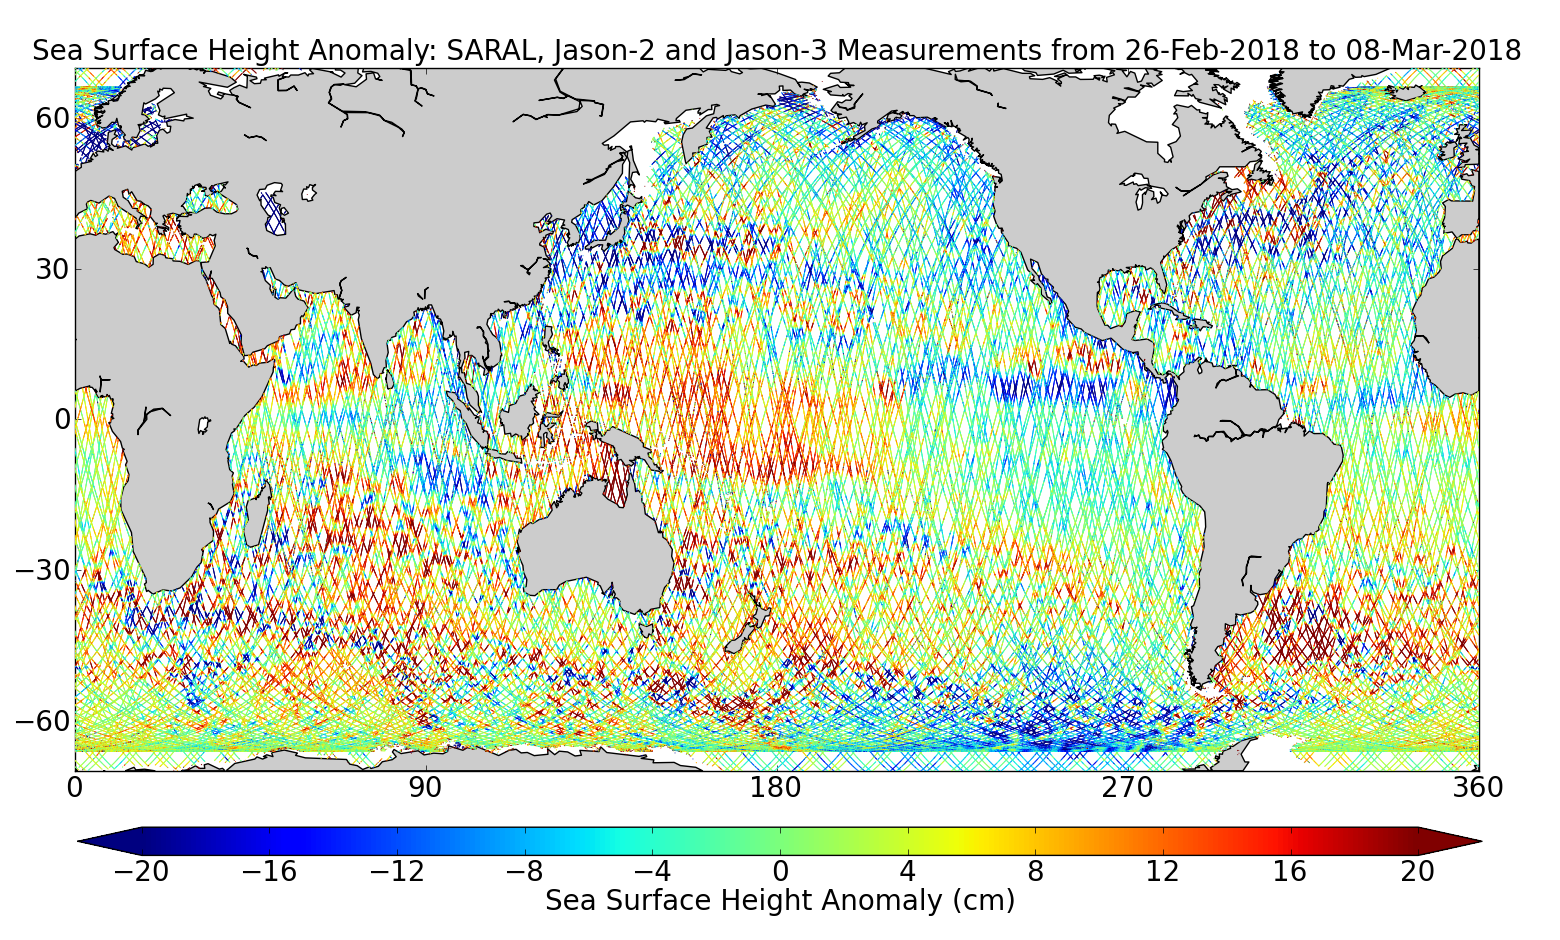 Sea Surface Height Anomaly: SARAL, Jason-2 and Jason-3 Measurements from 26-Feb-2018 to 08-Mar-2018